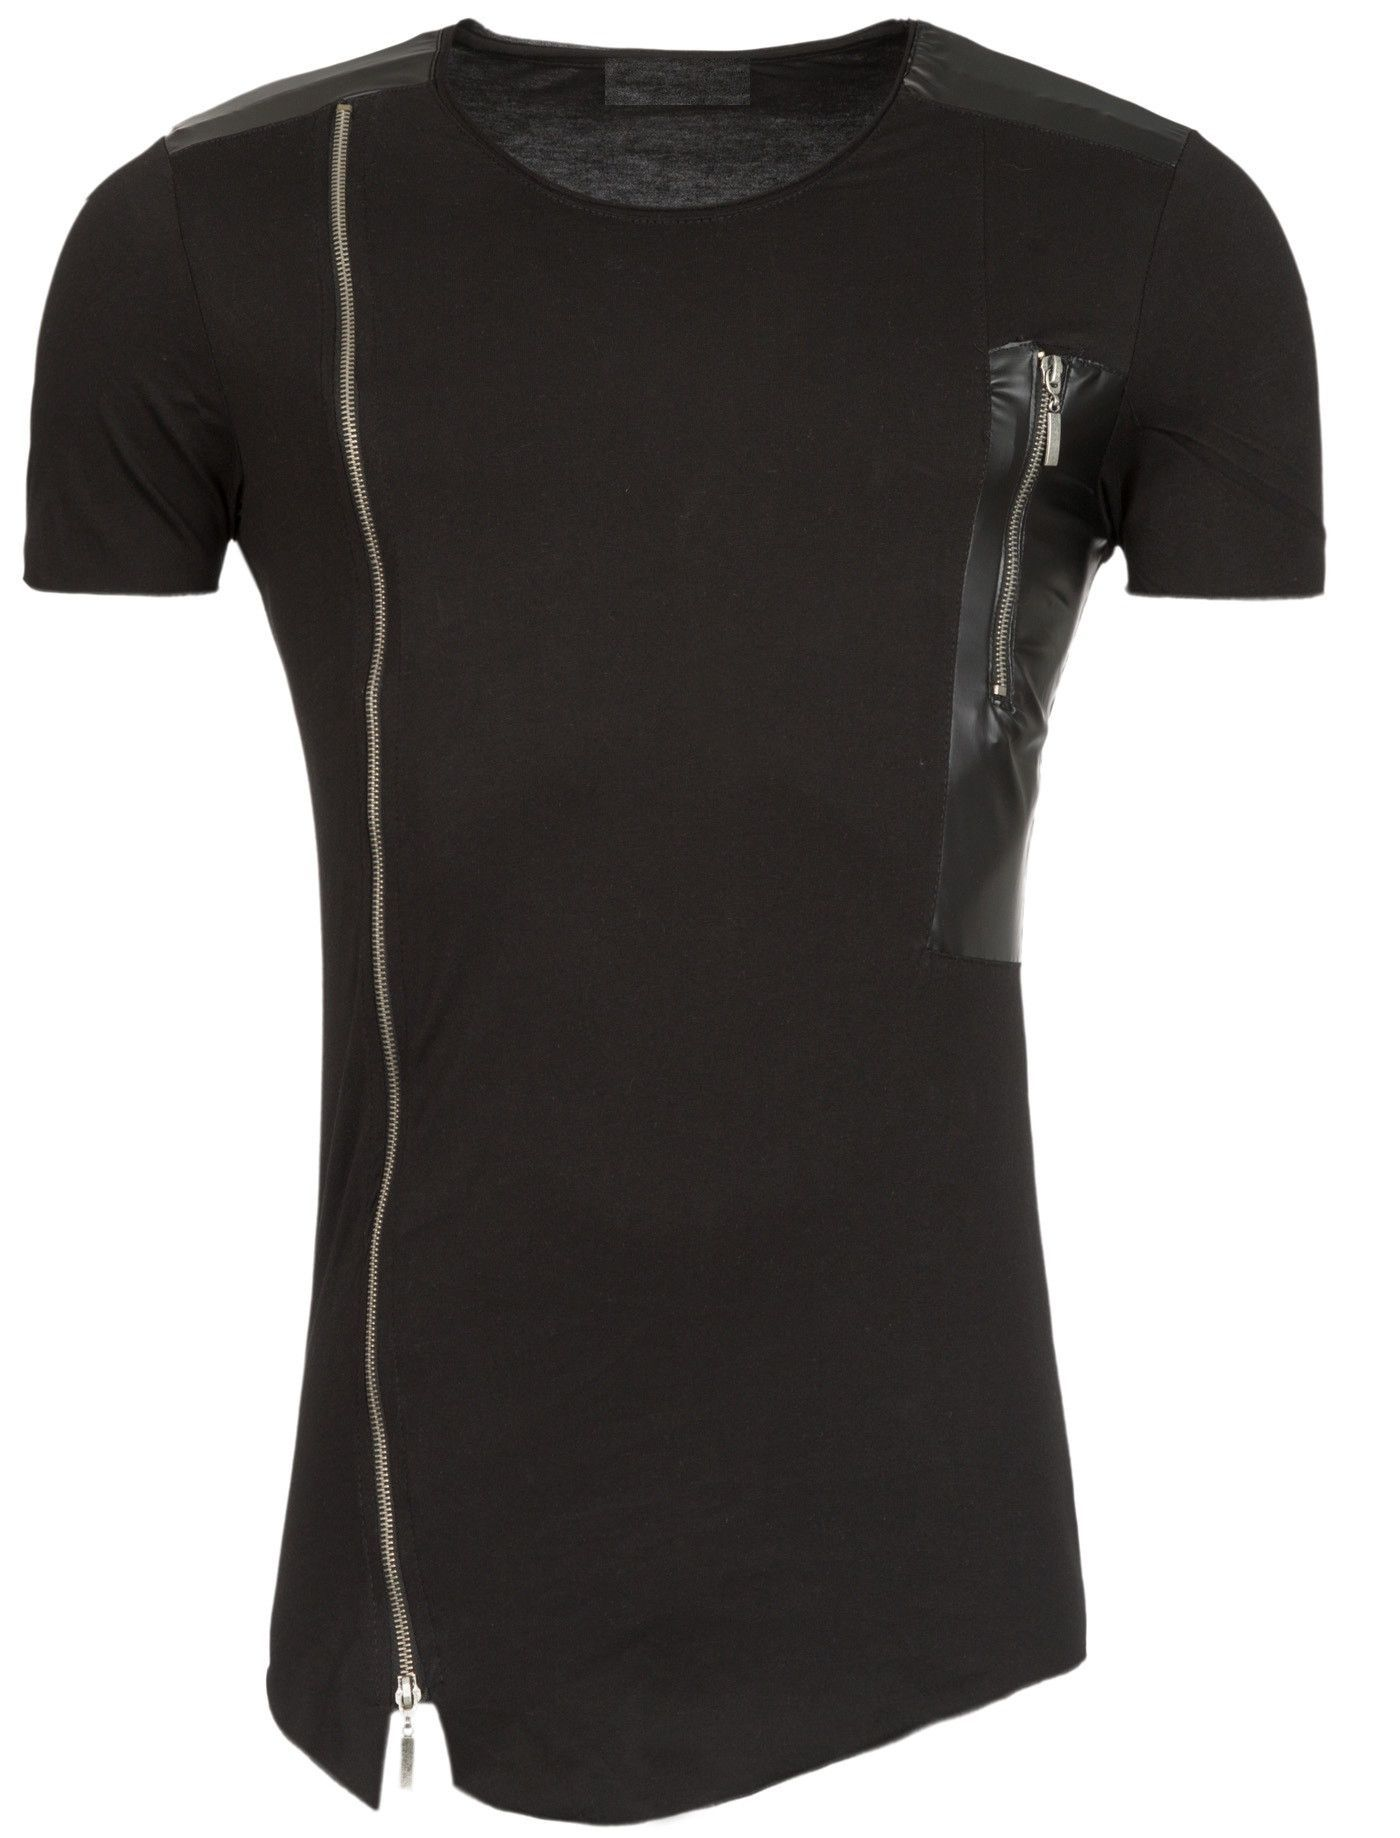 Black t shirt with zipper - This Is A T Shirt For Men In Black With Two Closures One Located On The Left Side And The Other End On The Right Side But Smaller